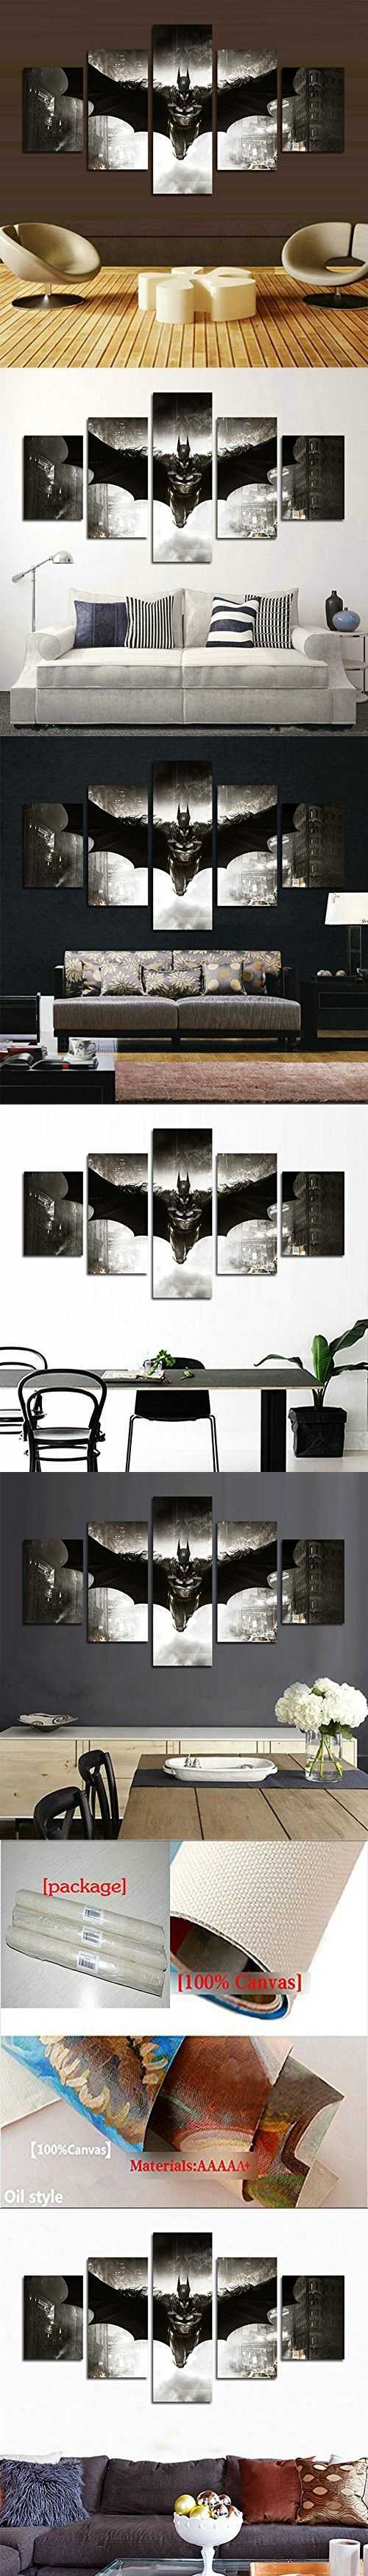 H.COZY5 Piece HD printed Batman Movie Poster room decor poster painting canvas print wall art canvas (No Frame) Unframed far301 50 inch x30 inch